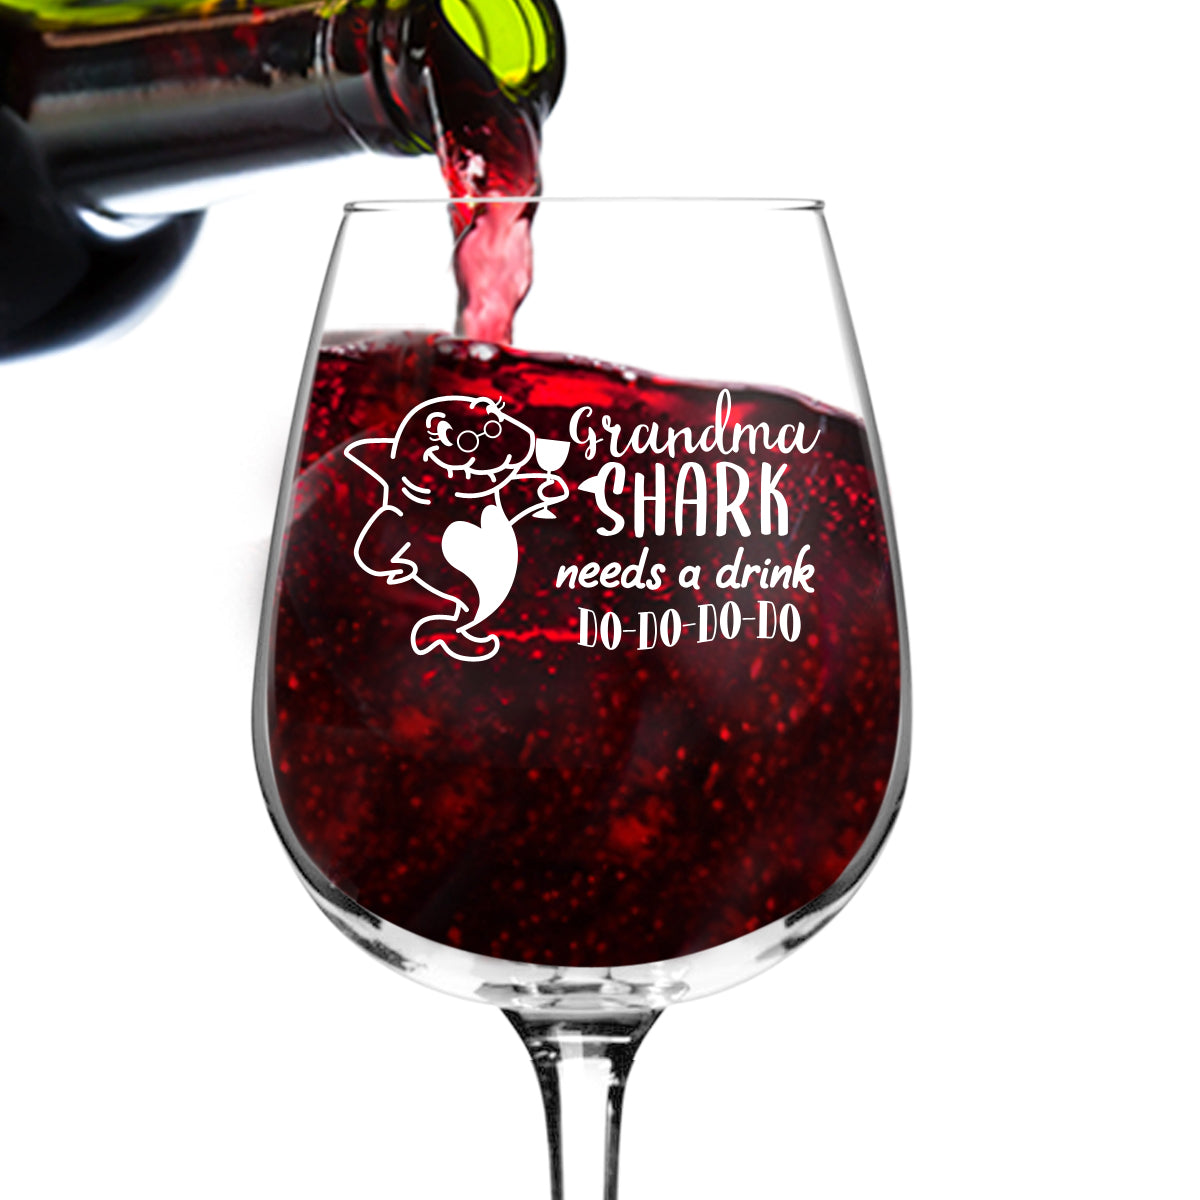 Grandma Shark Needs A Drink Do Do Do Funny Wine Glass (12.75 oz) | Birthday Present for Mom| Best Mom Ever Glass for Mom, Step Mom, Grandma | Mom Gifts From Daughter, Son | Gift for Women | USA Made